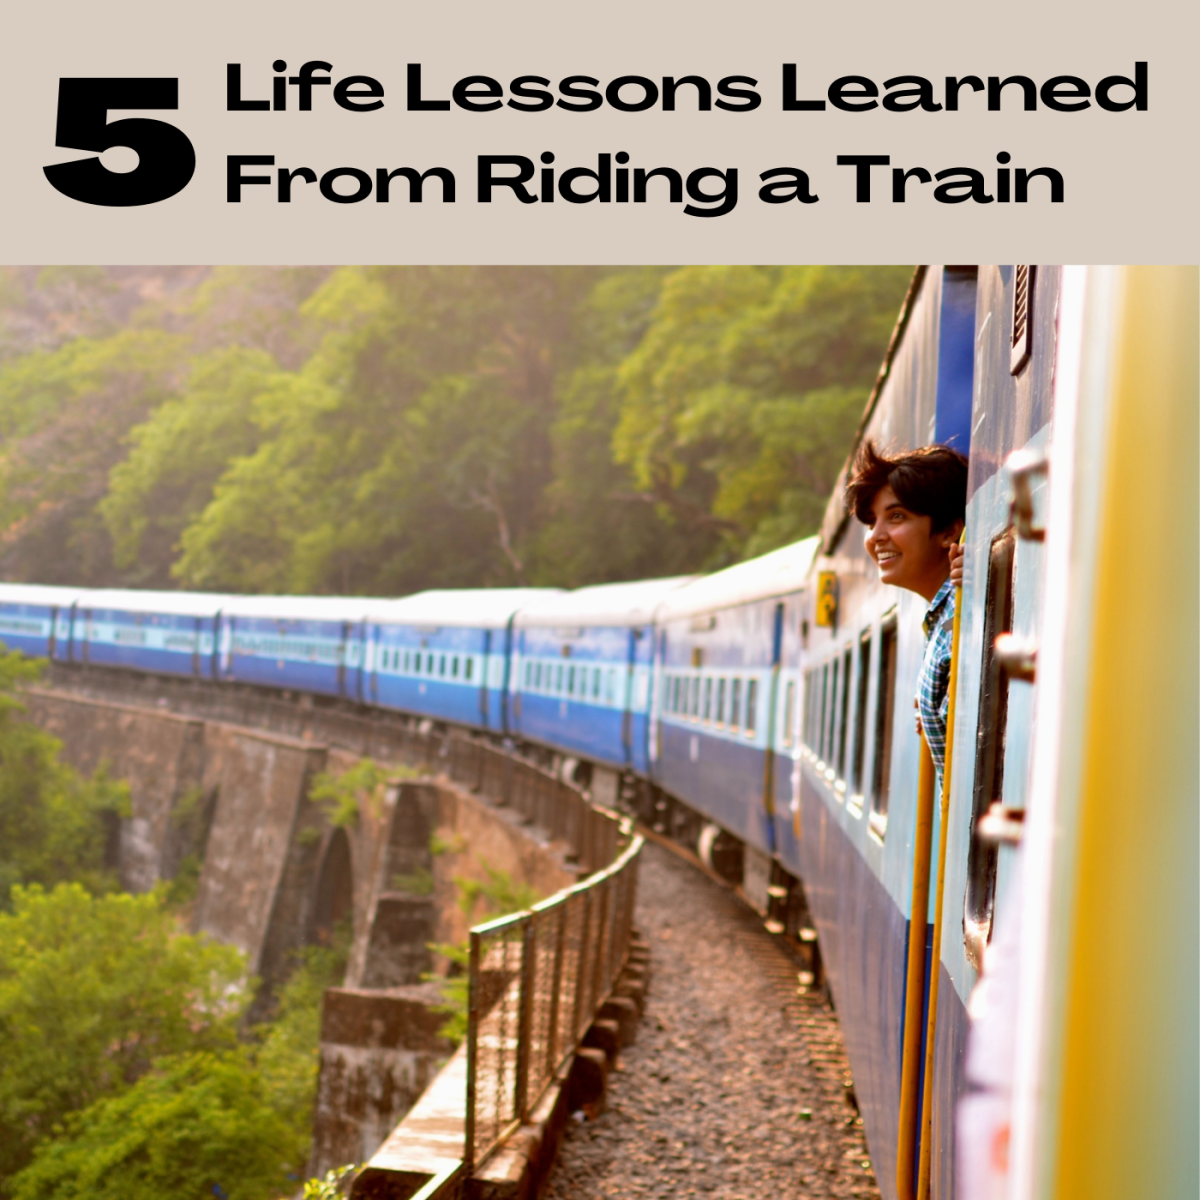 Five life lessons learned on a train